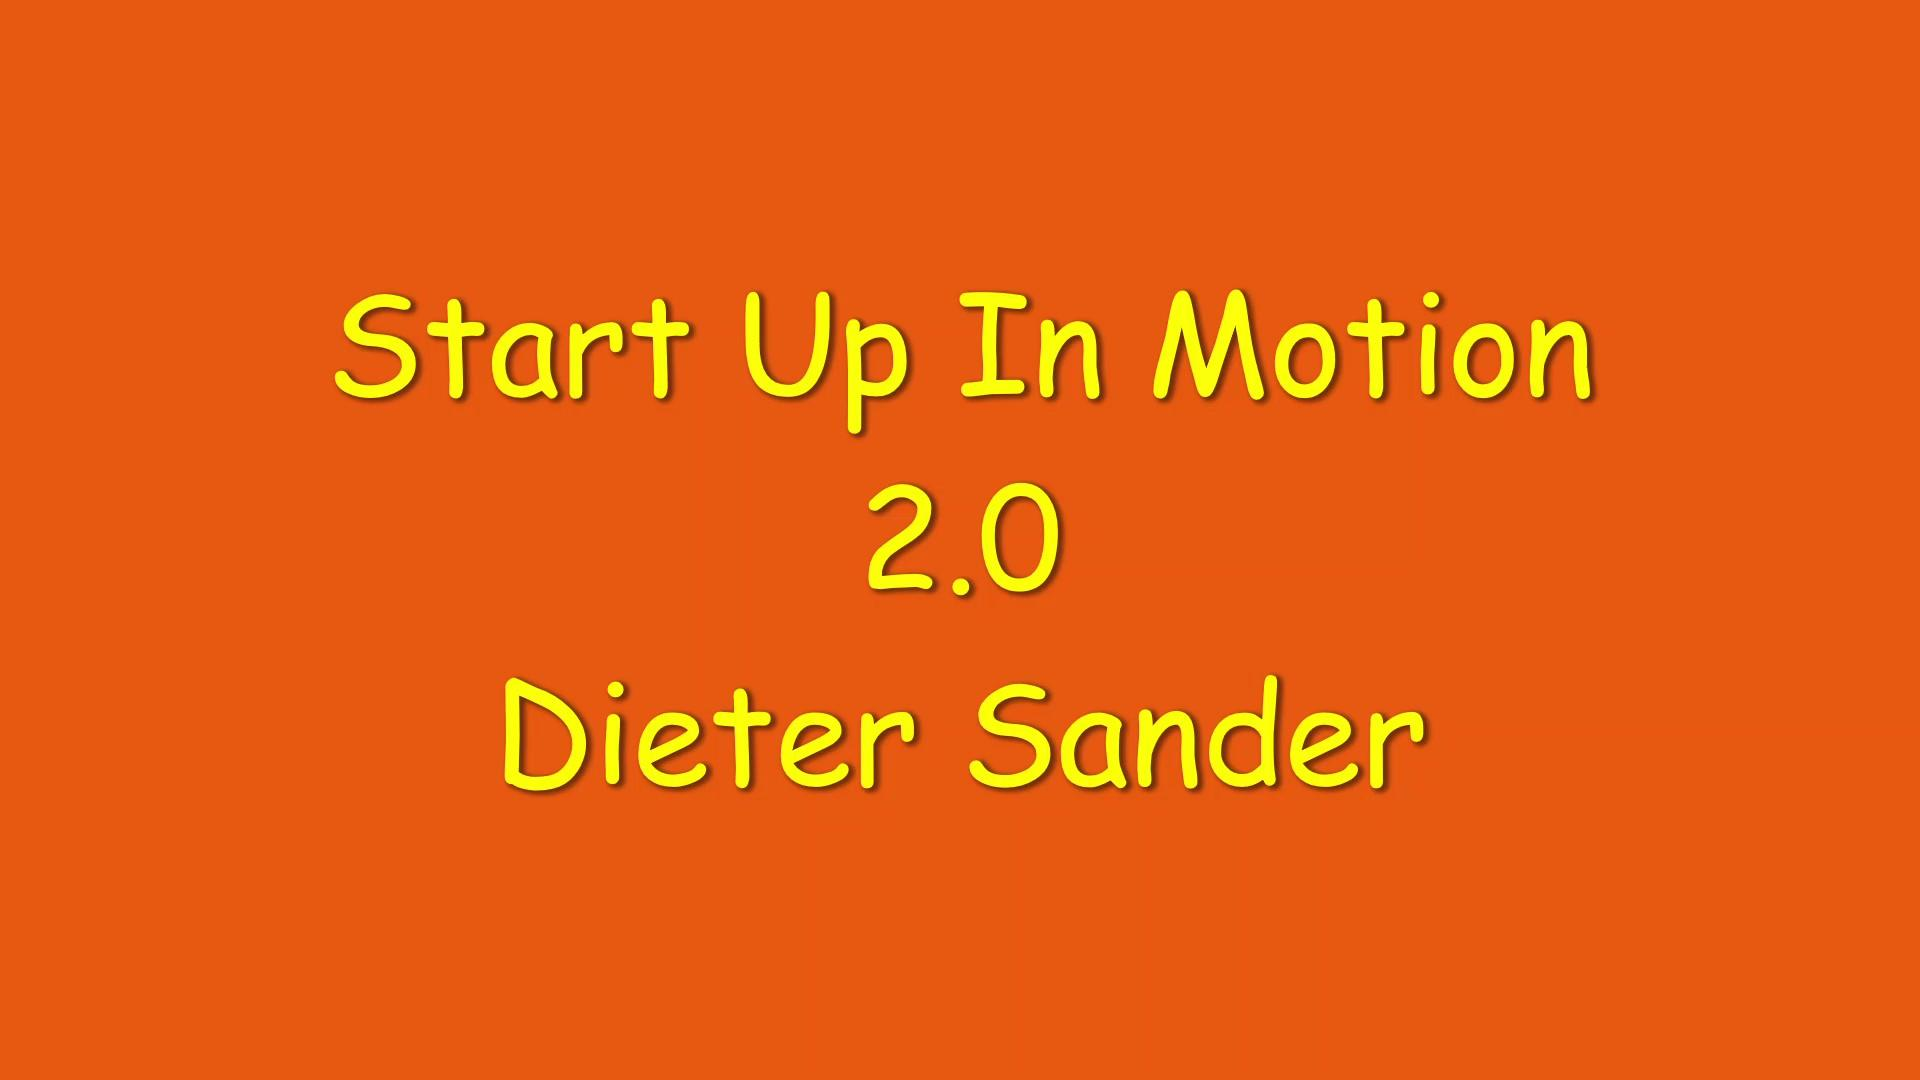 Start Up In Motion 2.0